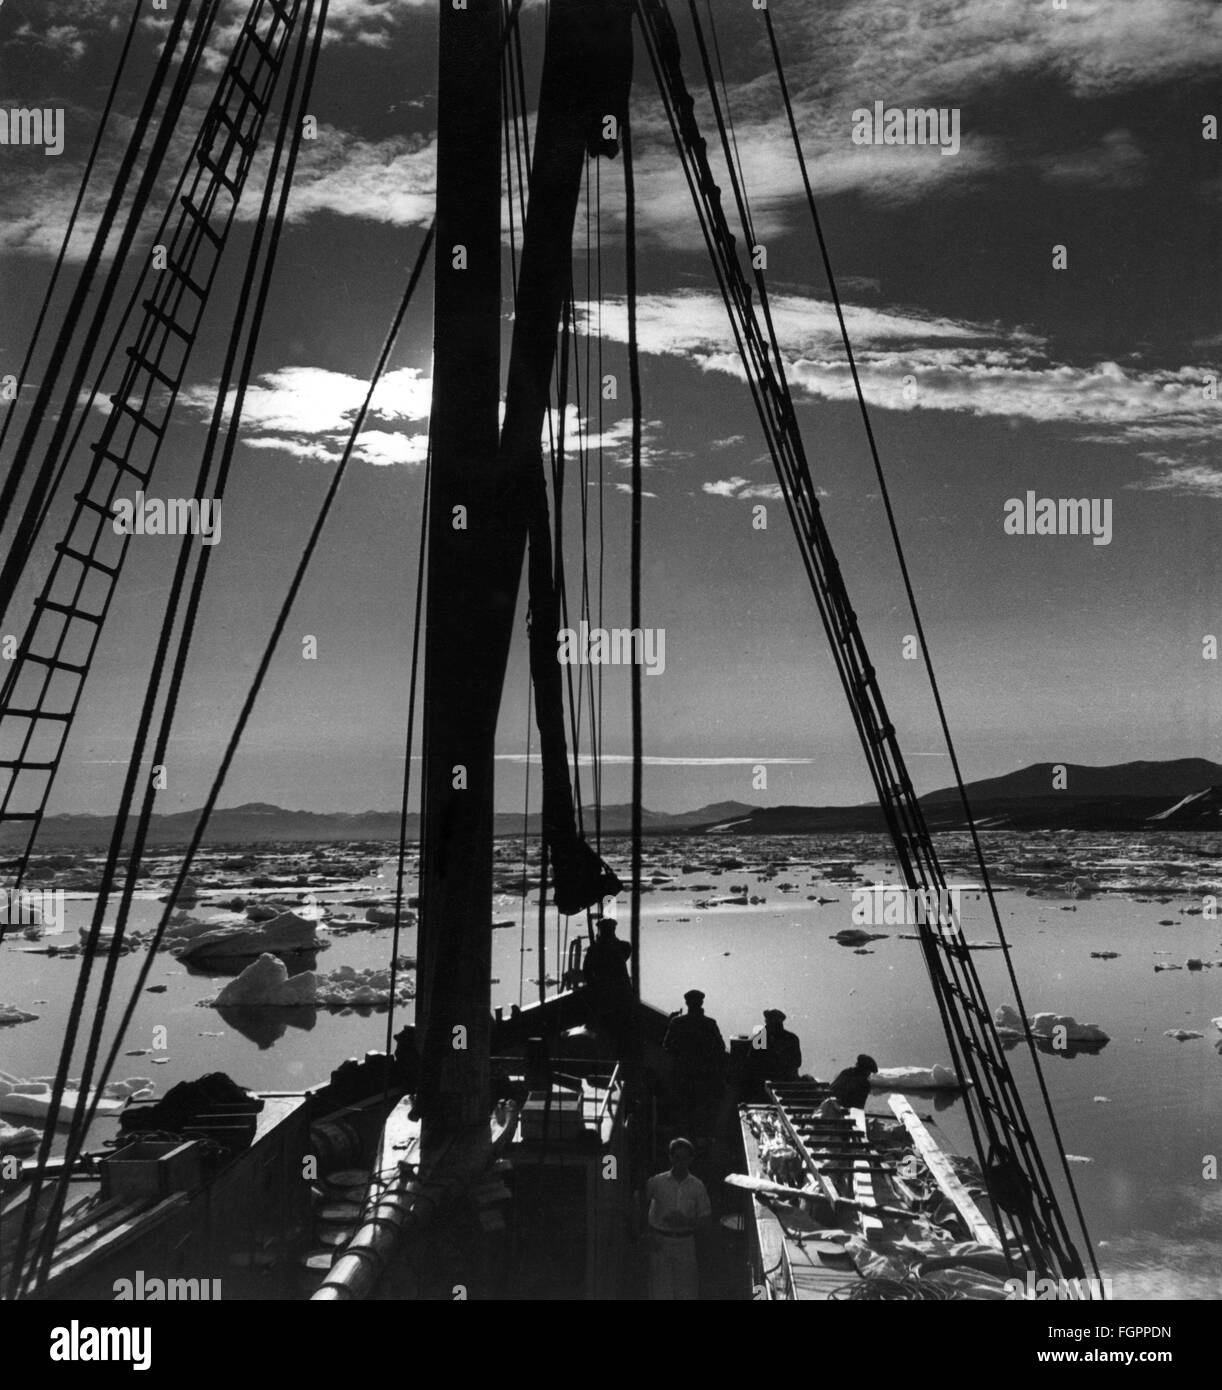 expeditions, polar expedition, ship near the North East coast of Greenland, circa 1960, Additional-Rights-Clearences - Stock Image